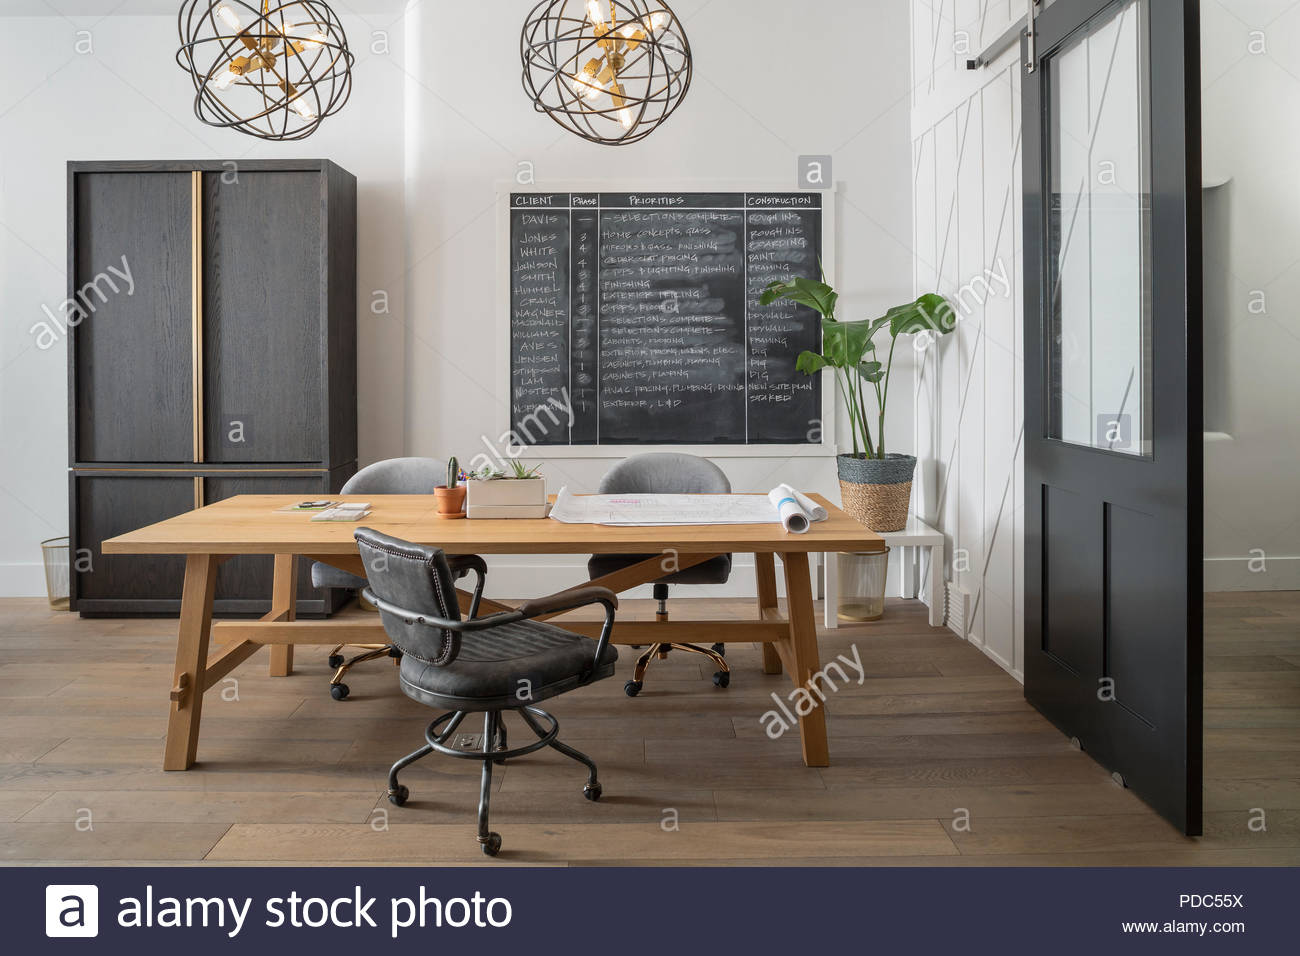 Creative architect office space - Stock Image